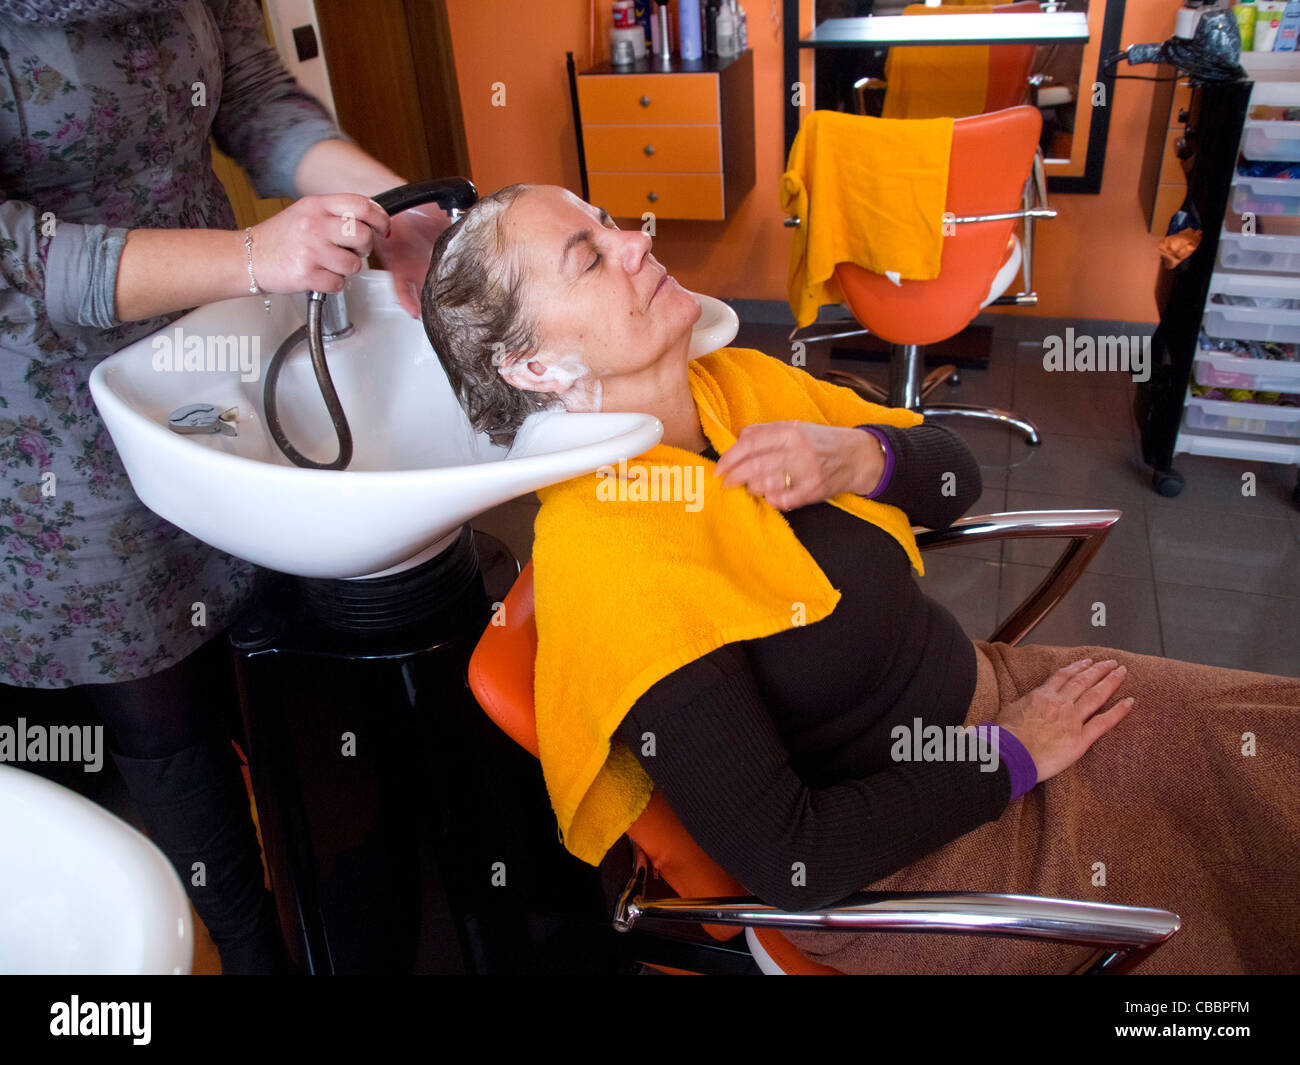 Middle-aged woman having her hair washed in the hair salon - Stock Image